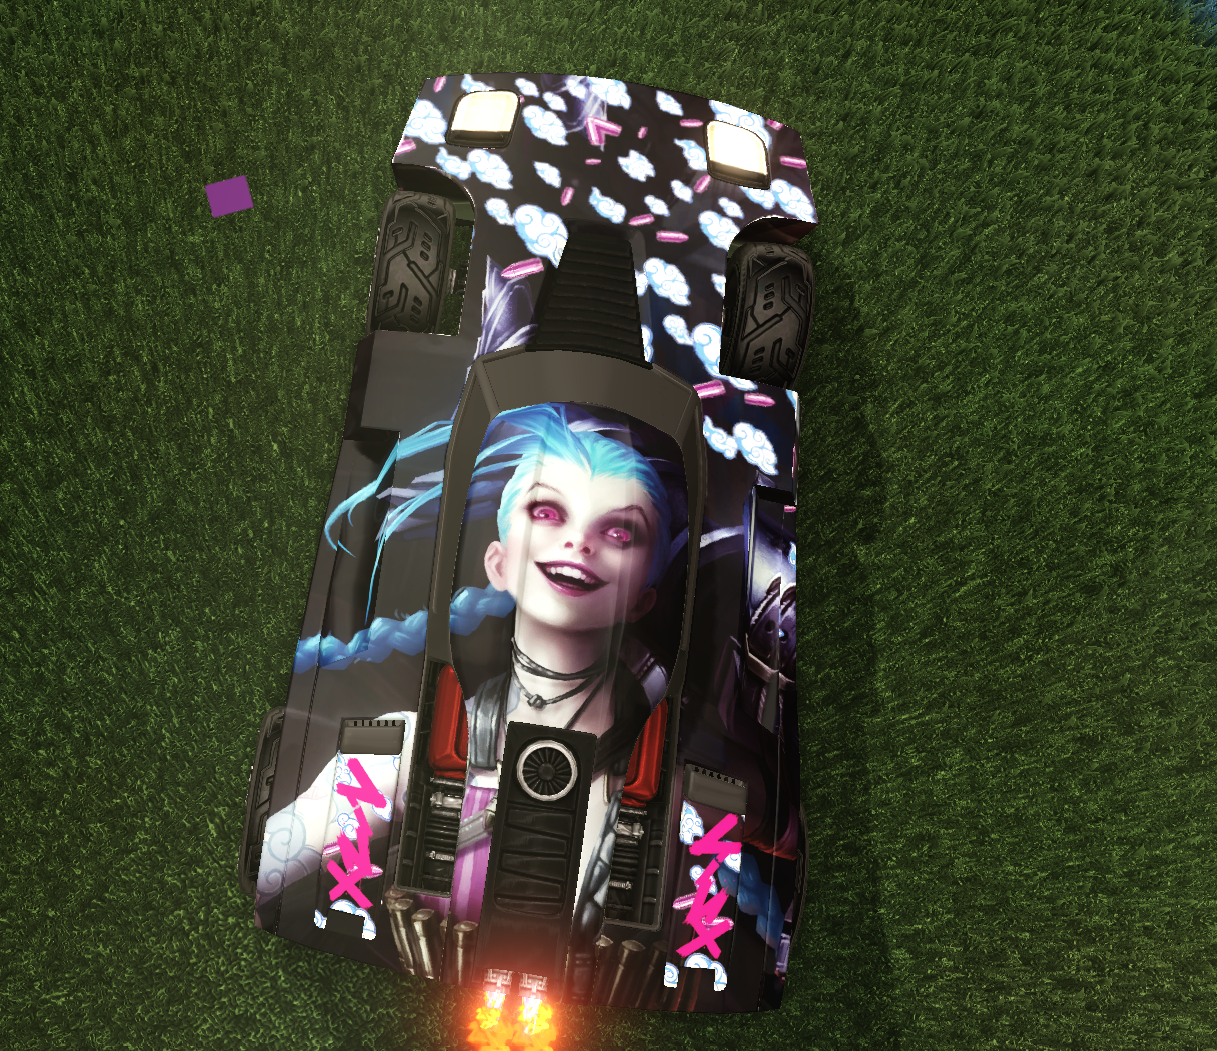 Get Jinx'd (League Of Legends Decal)